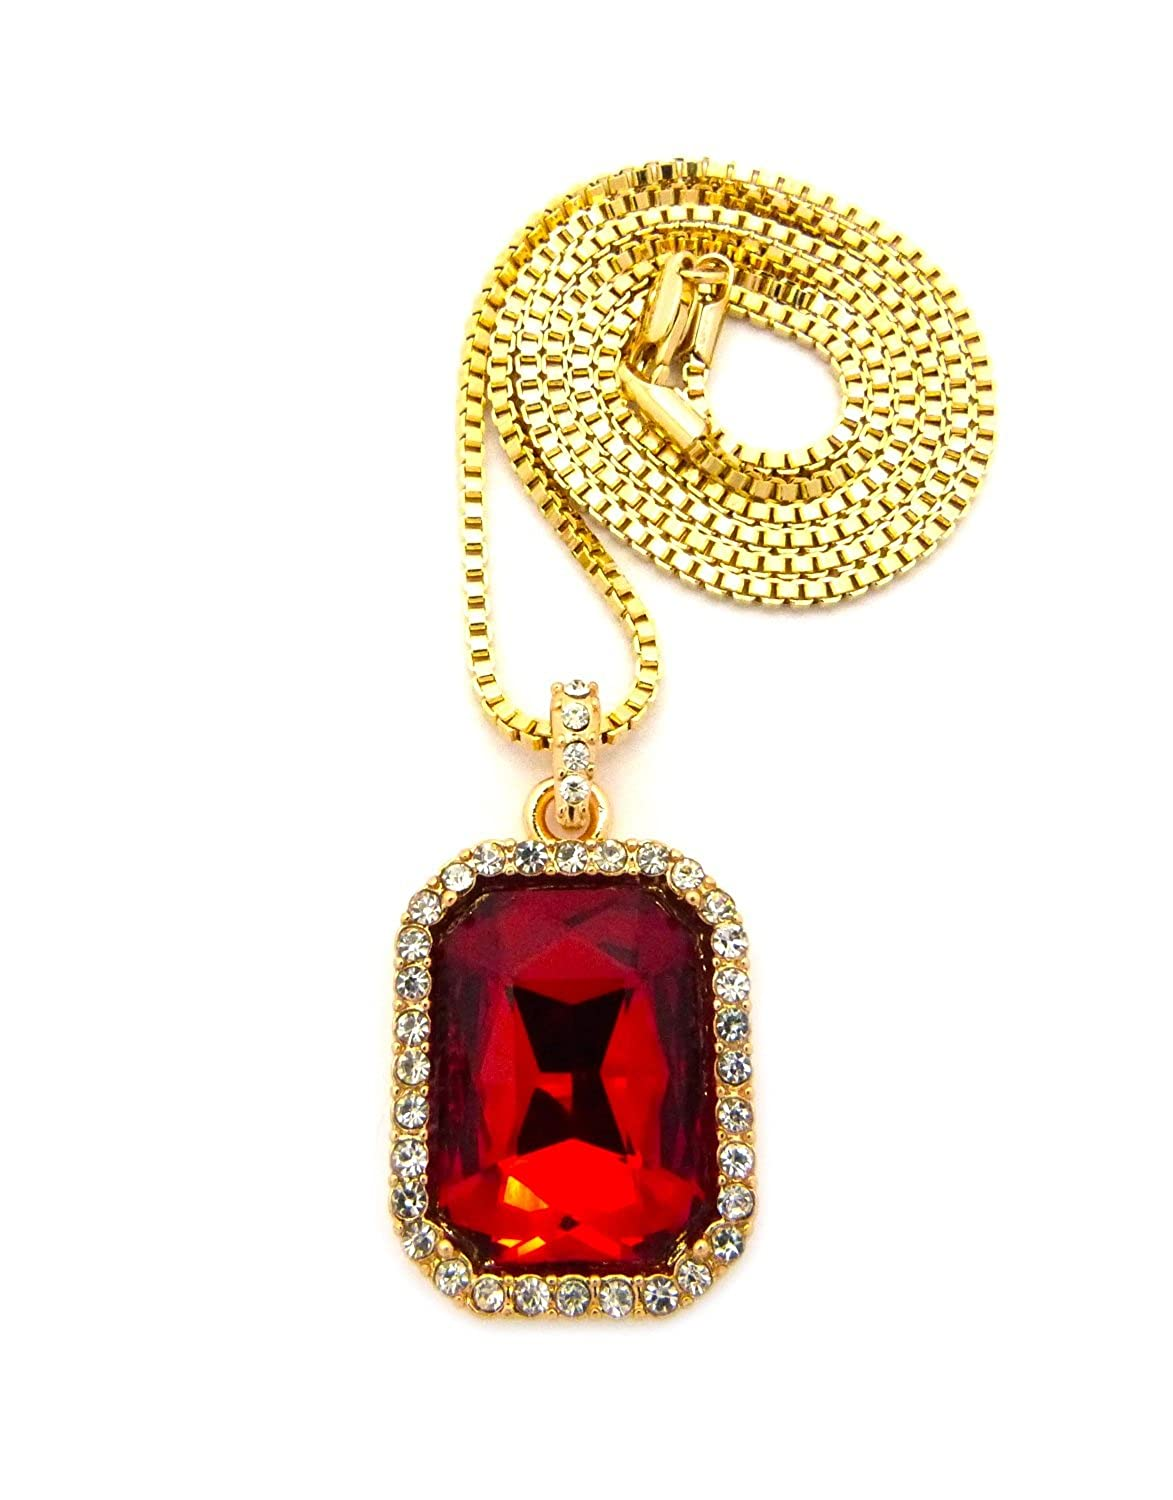 Mens hip hop iced out bird man rich gang red ruby pendant gold chain mens hip hop iced out bird man rich gang red ruby pendant gold chain necklace amazon jewelry aloadofball Gallery